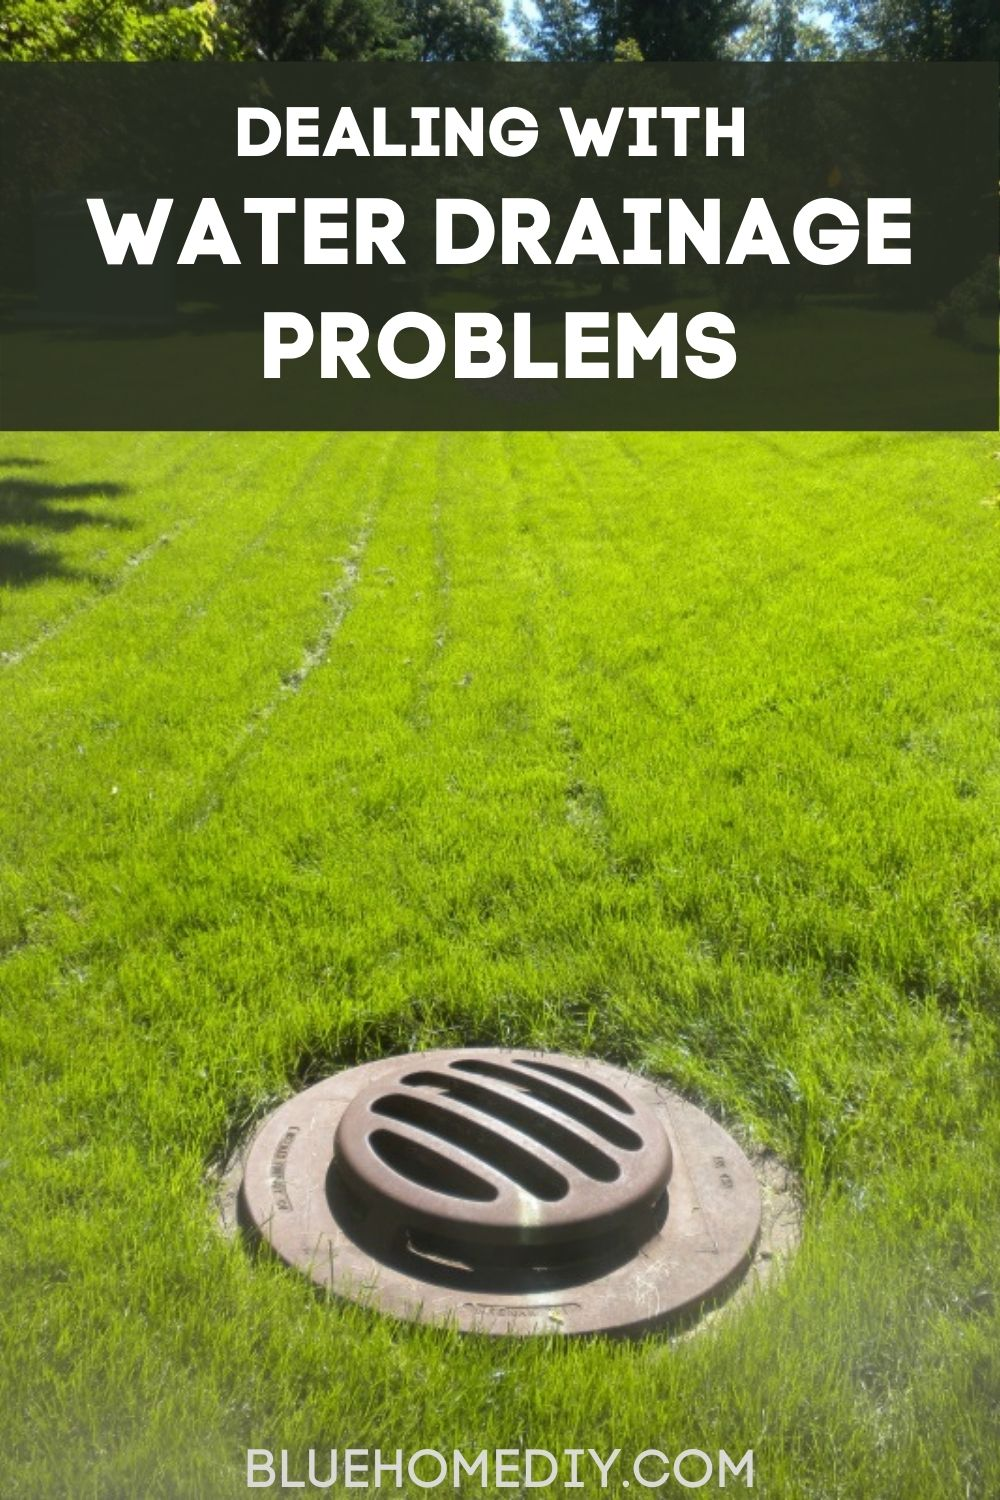 How to Deal with Water Drainage Problems in Your Property